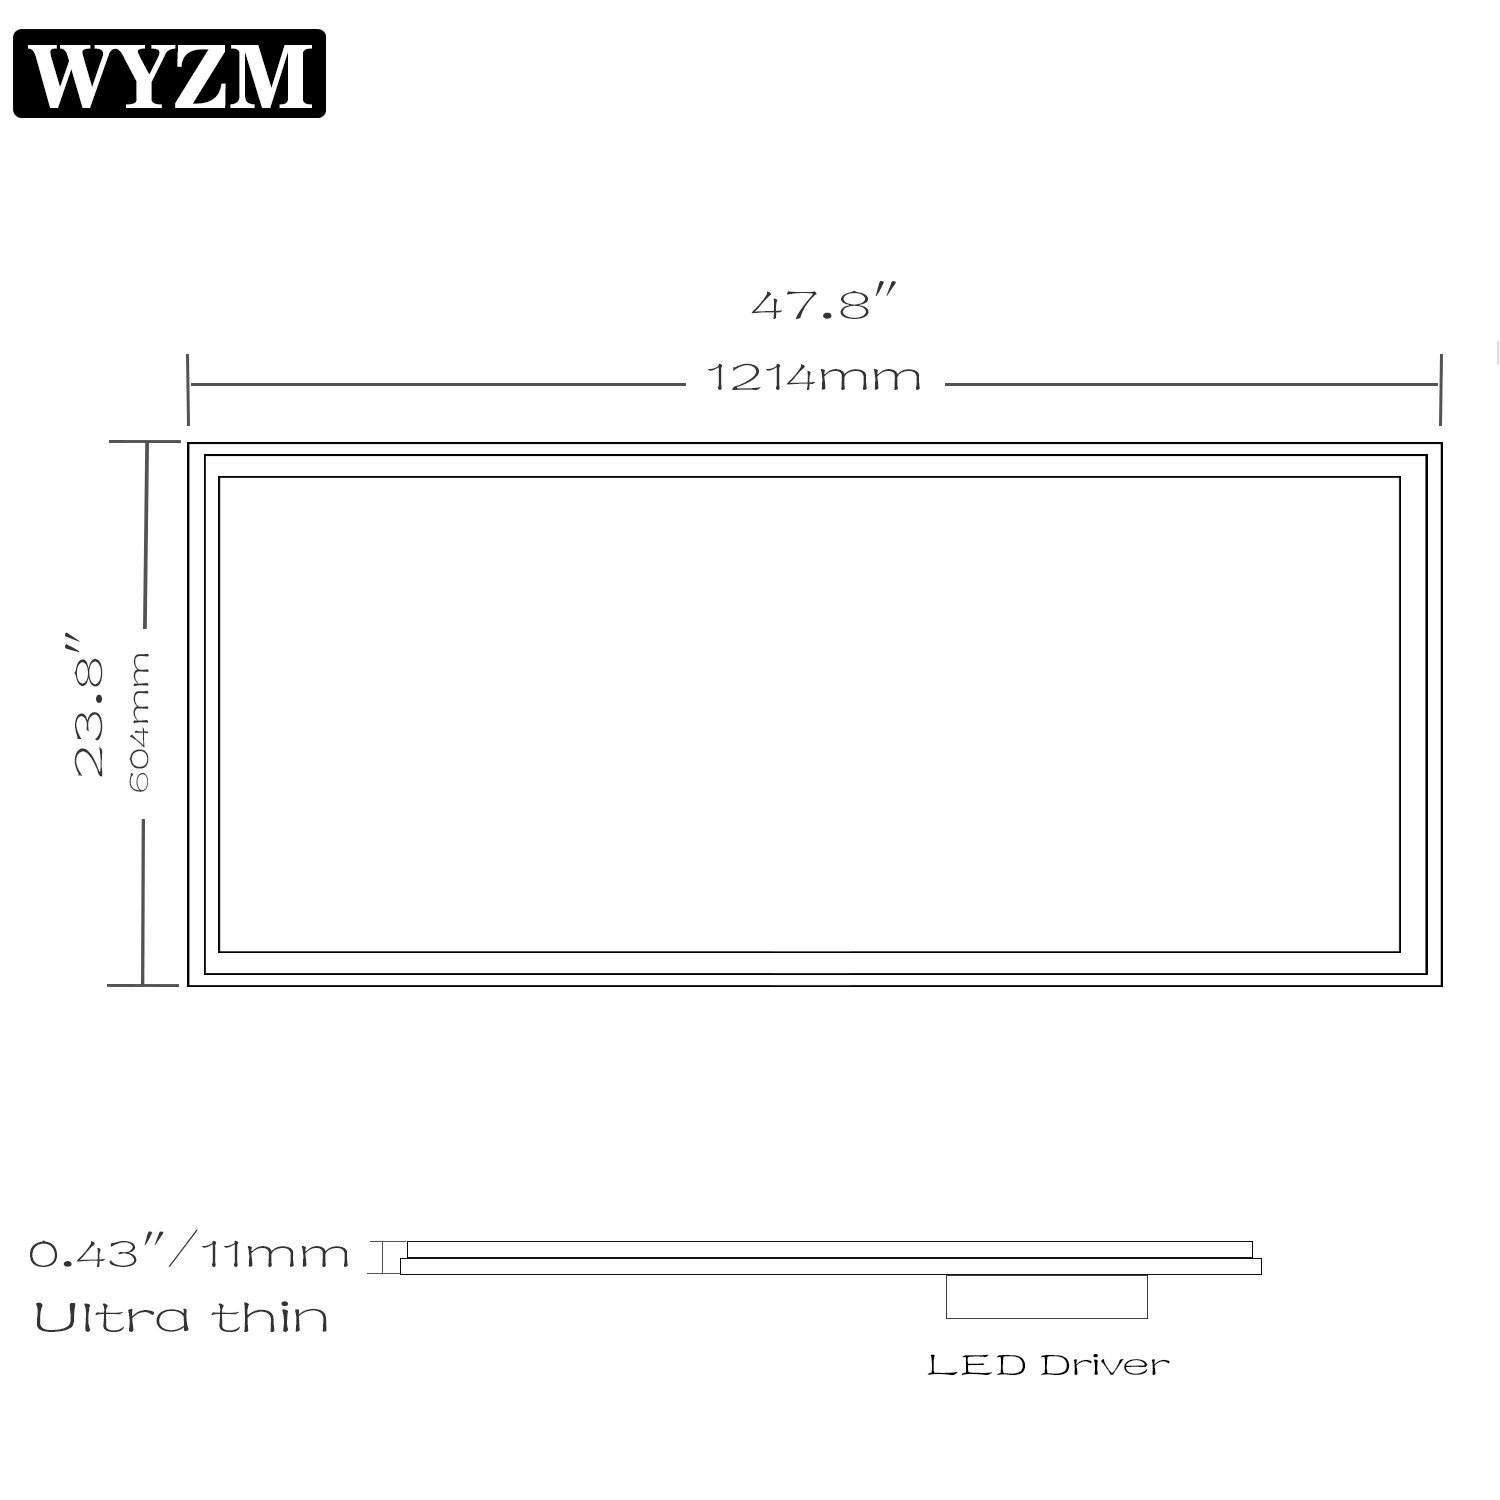 Amazon.com: WYZM 2x2FT 40W Flat LED Panel Light 5000K, Drop Ceiling